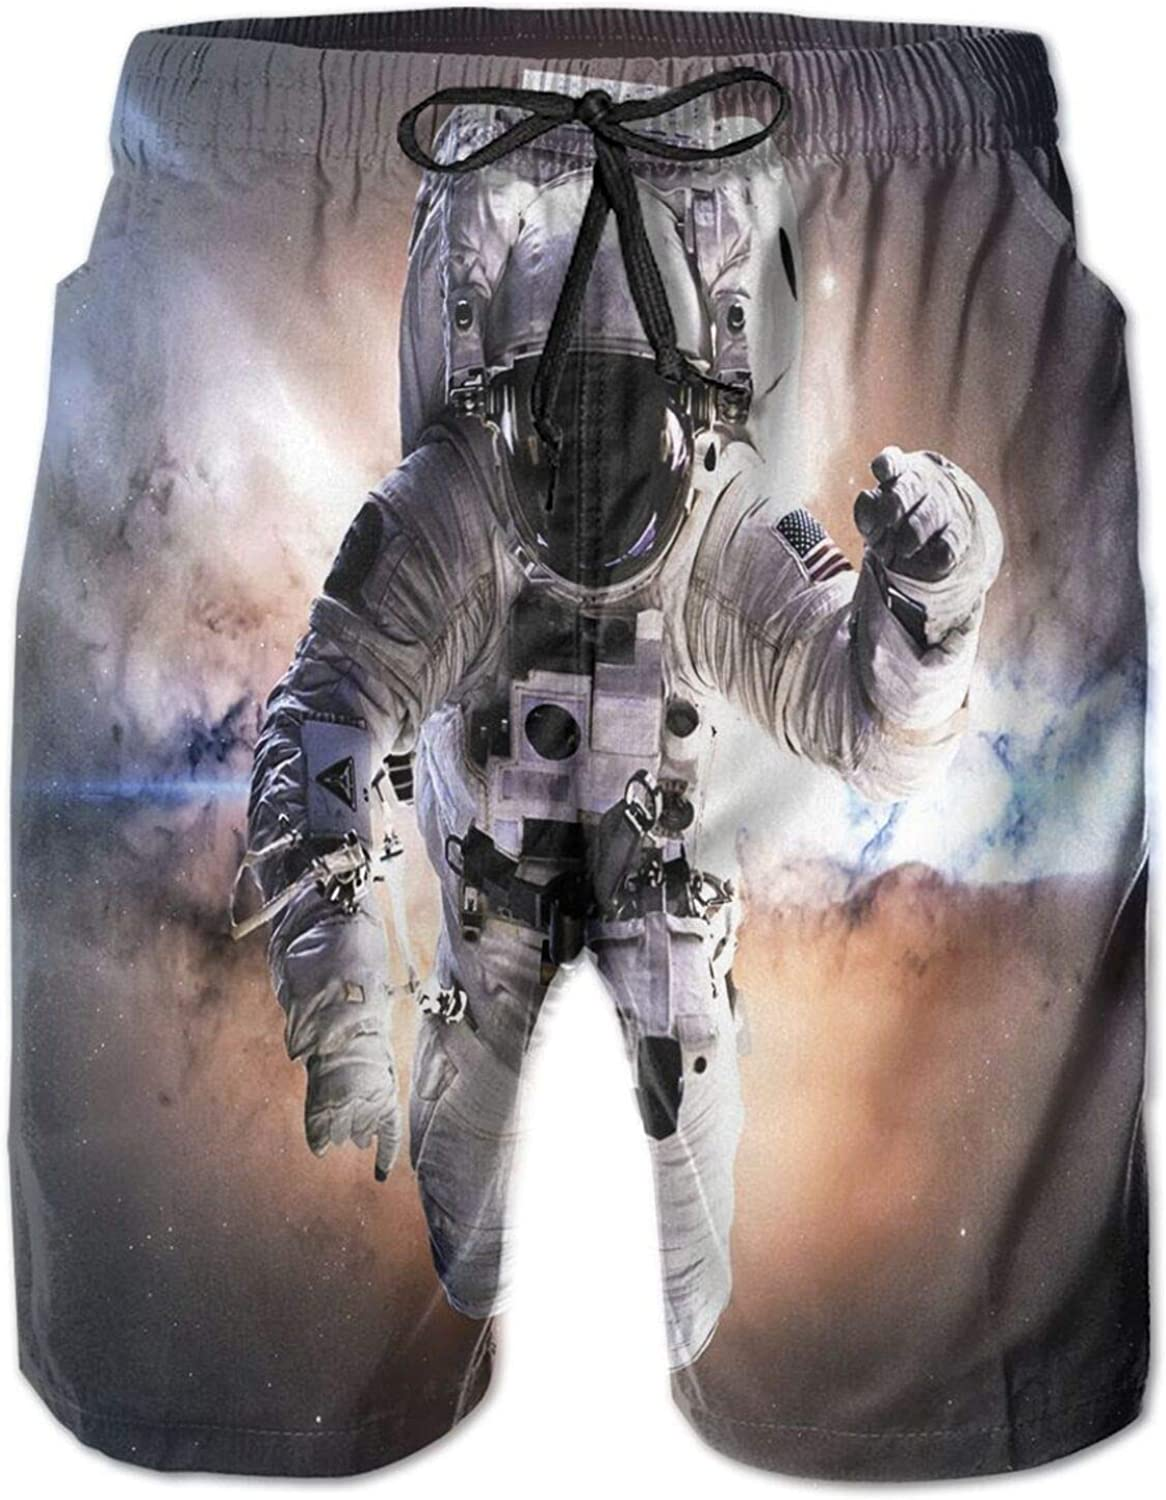 Floating Astronaut in Space Nebula Heavenly Bodies Star Systems Love Science Drawstring Waist Beach Shorts for Men Swim Trucks Board Shorts with Mesh Lining,L